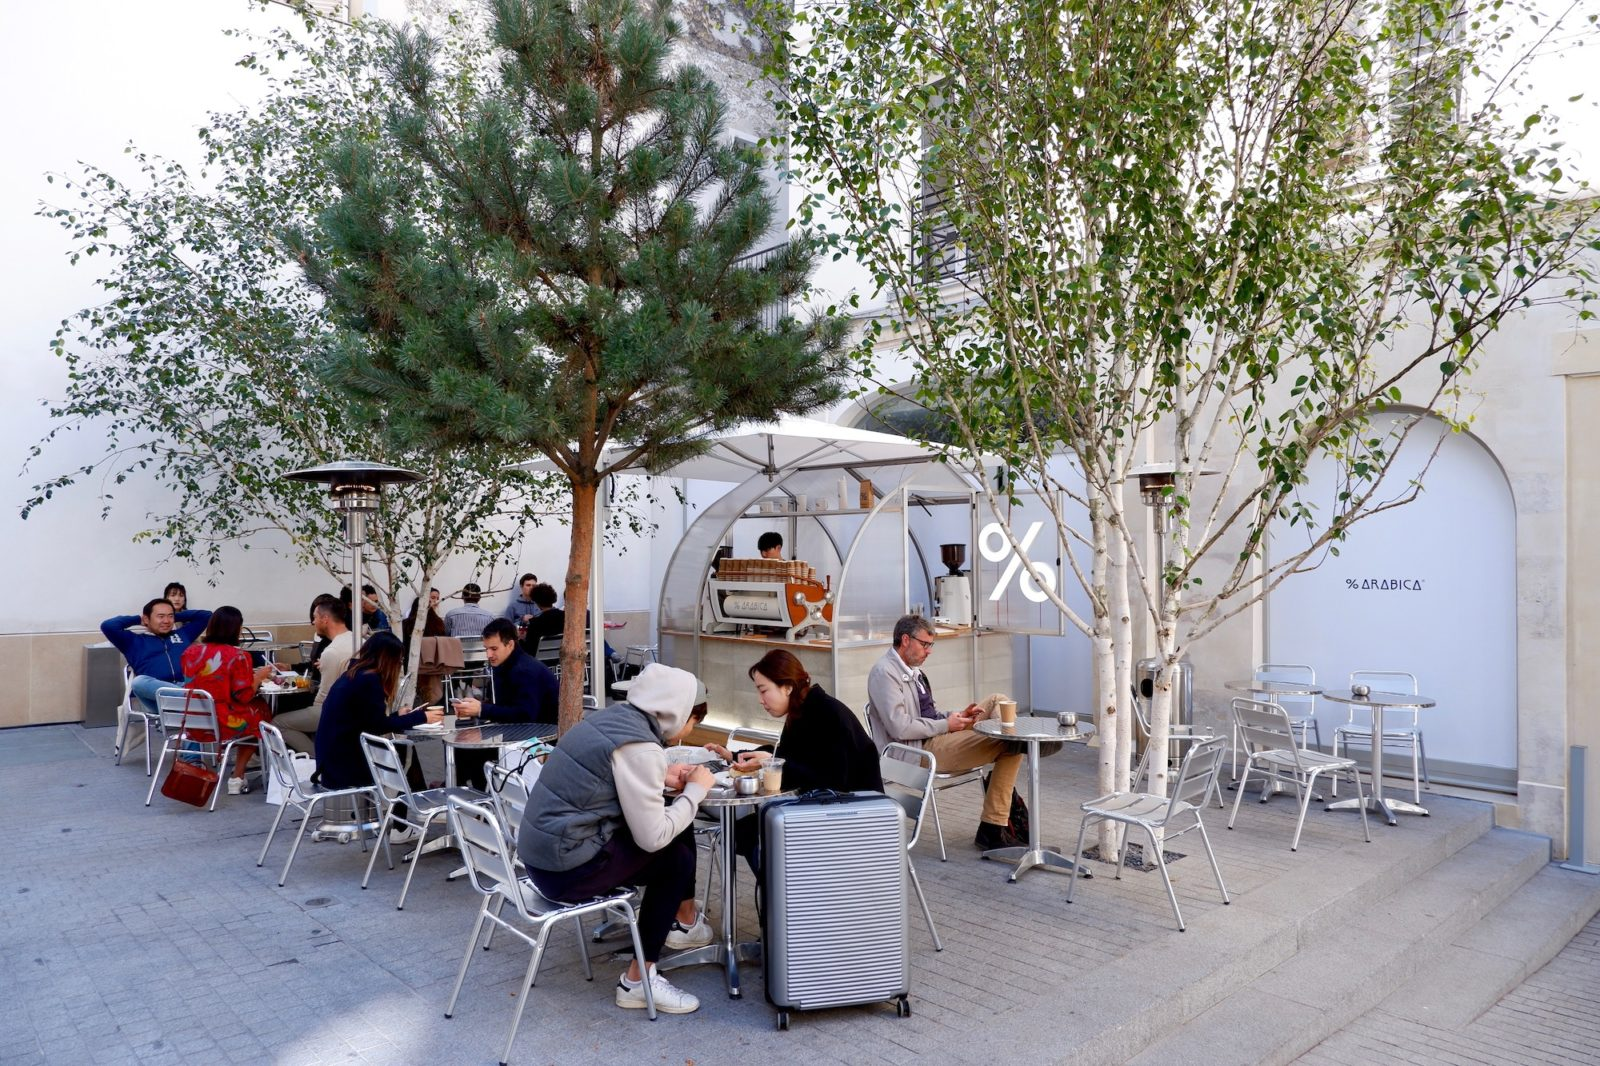 The outdoor cafe 100% Arabica at Beaupassage in Paris' St Germain Left Bank Neighborhood